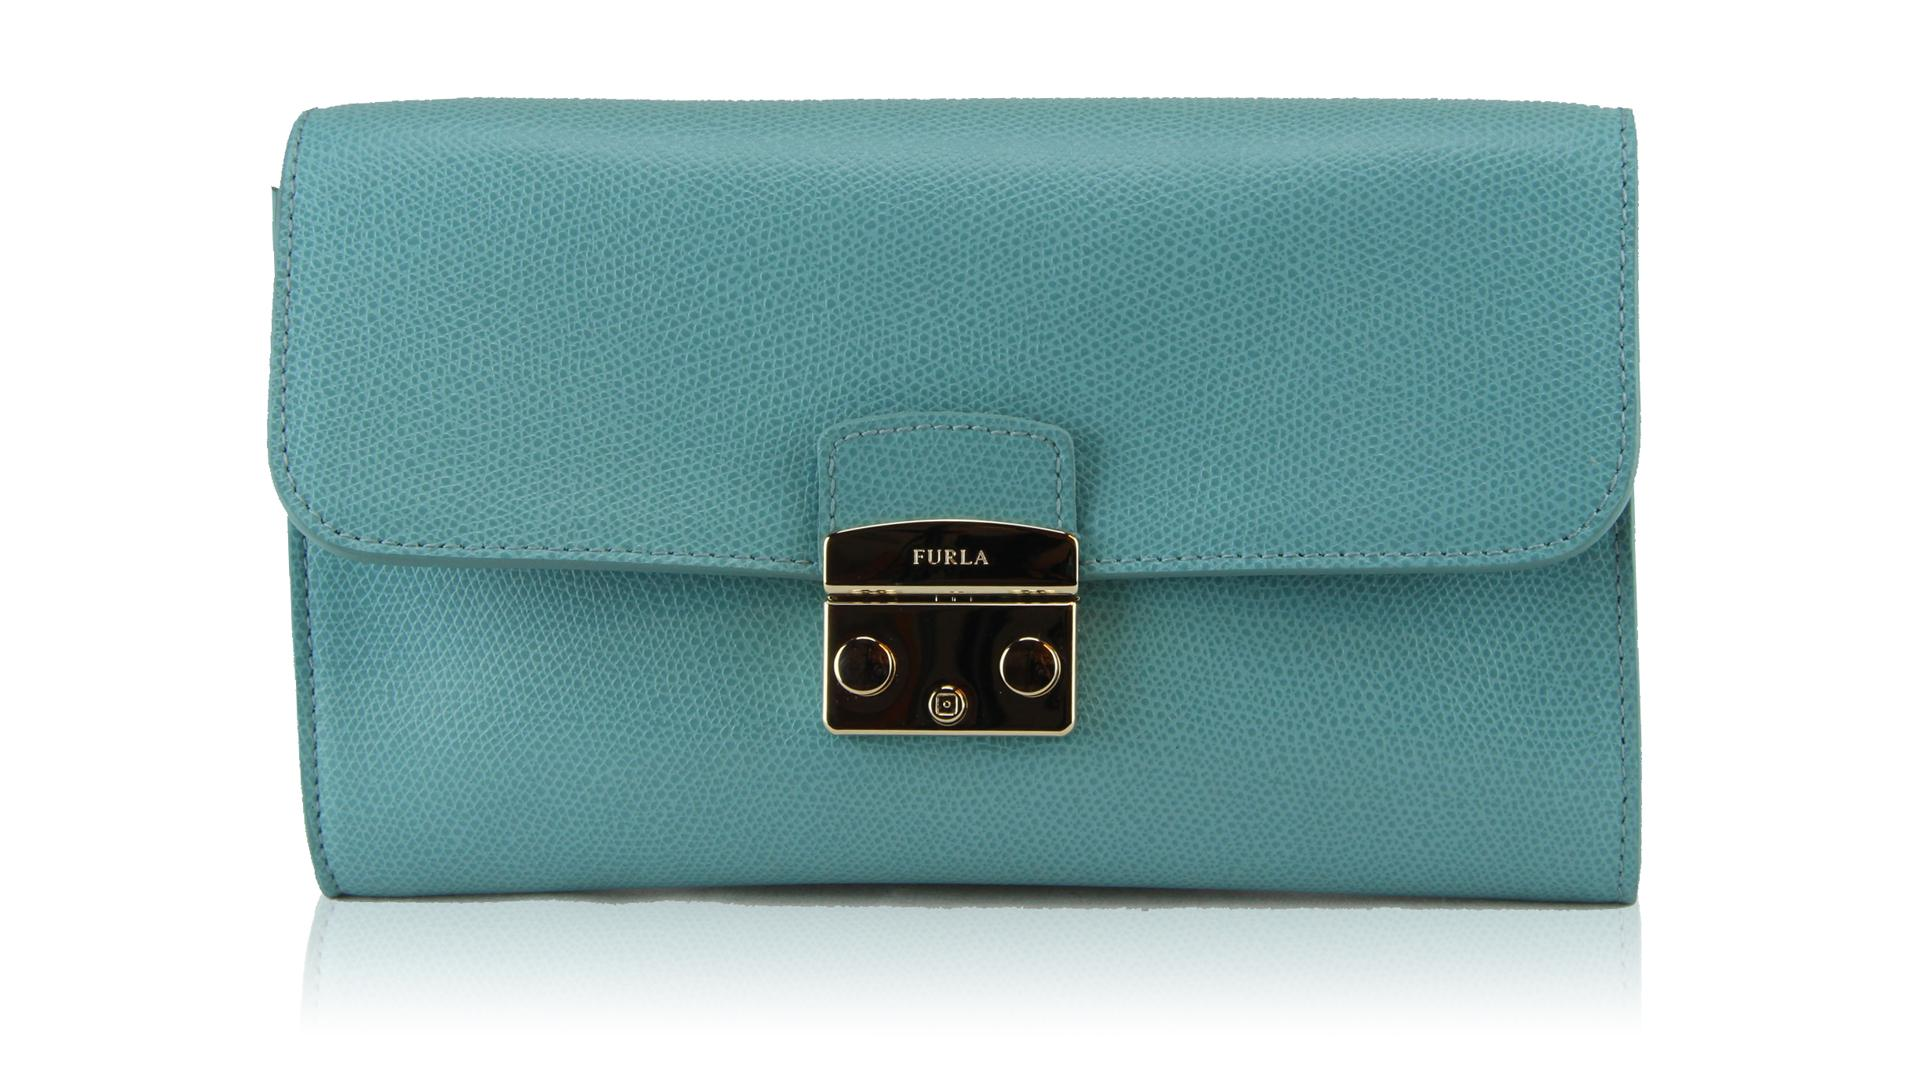 Shoulder bag Furla METROPOLIS 810883 ACQUAMARINA